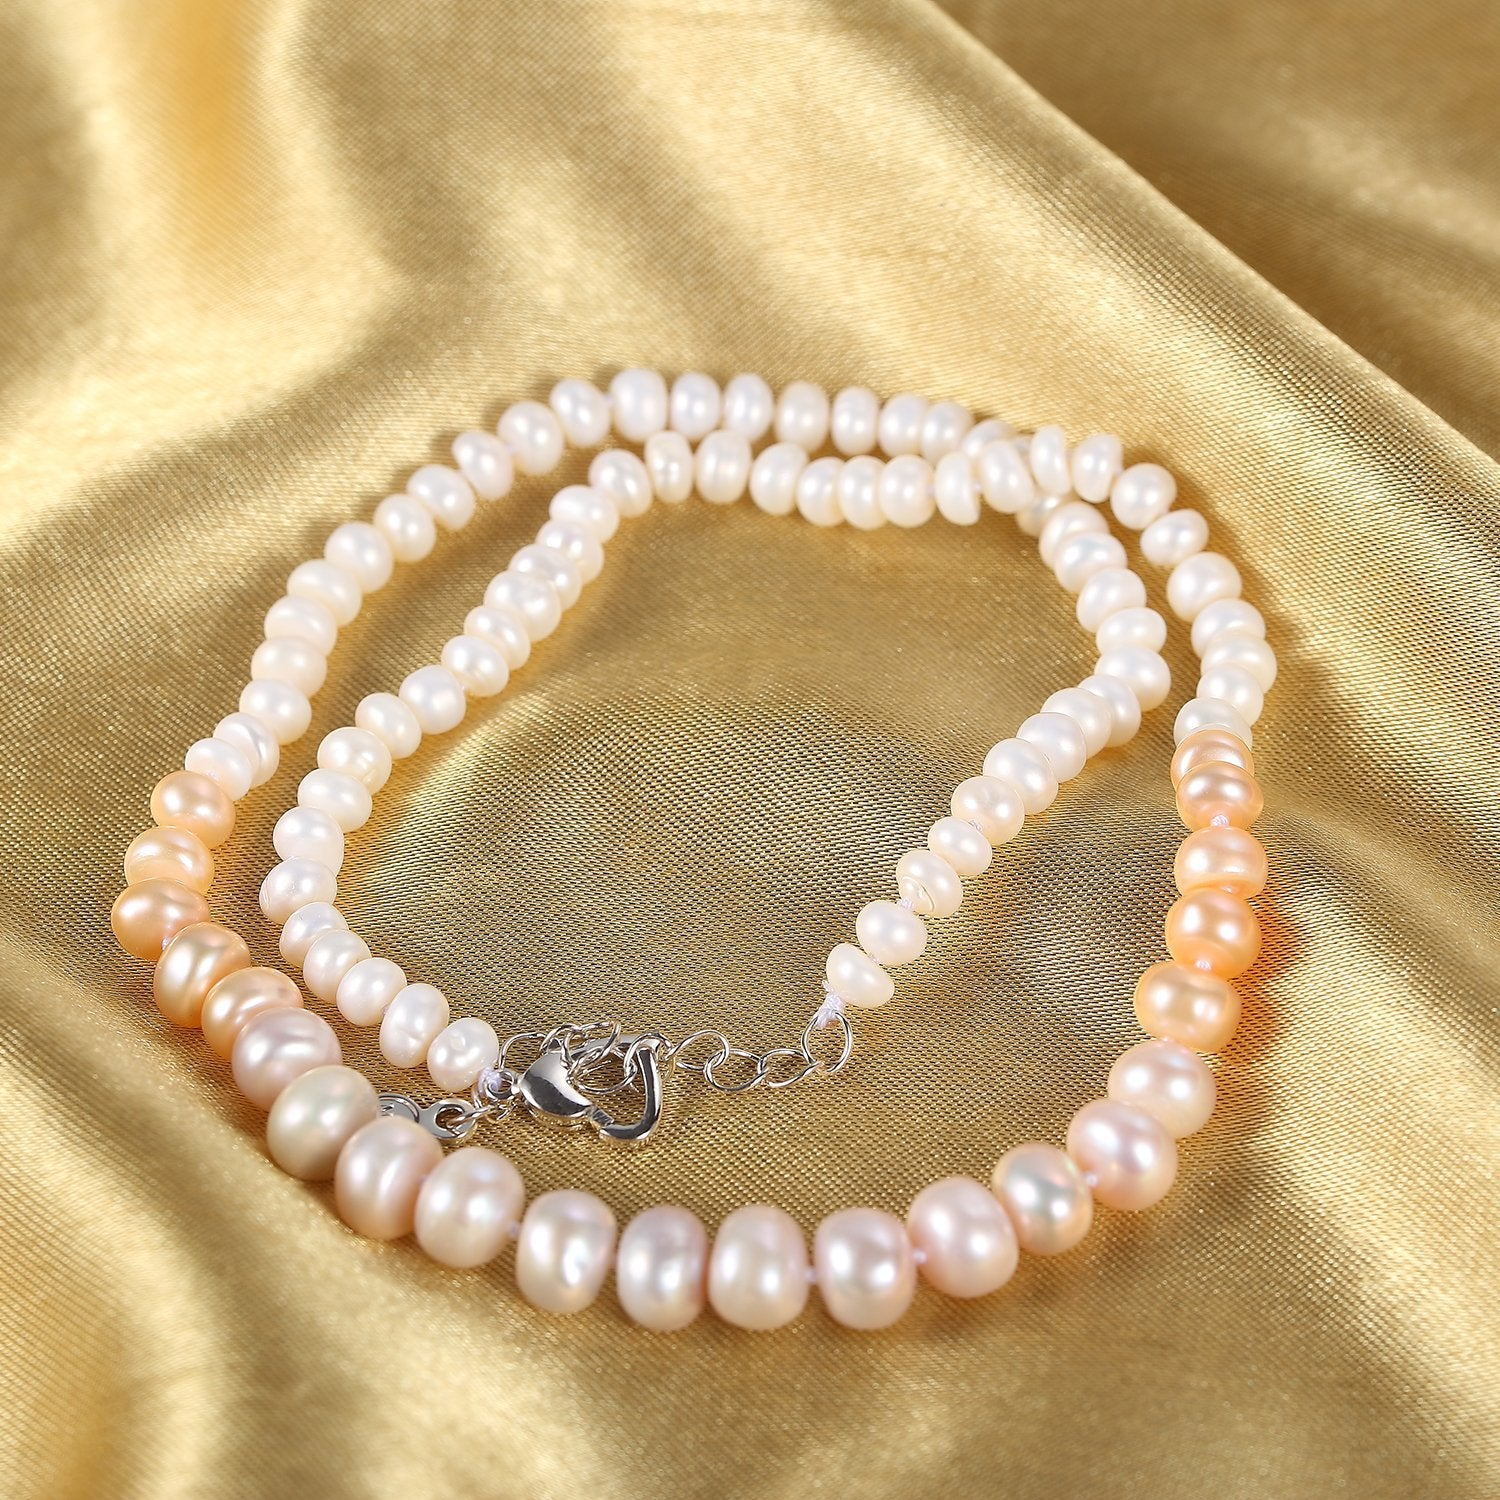 pearlnecklacelong pearl tahitian products necklace lfrank